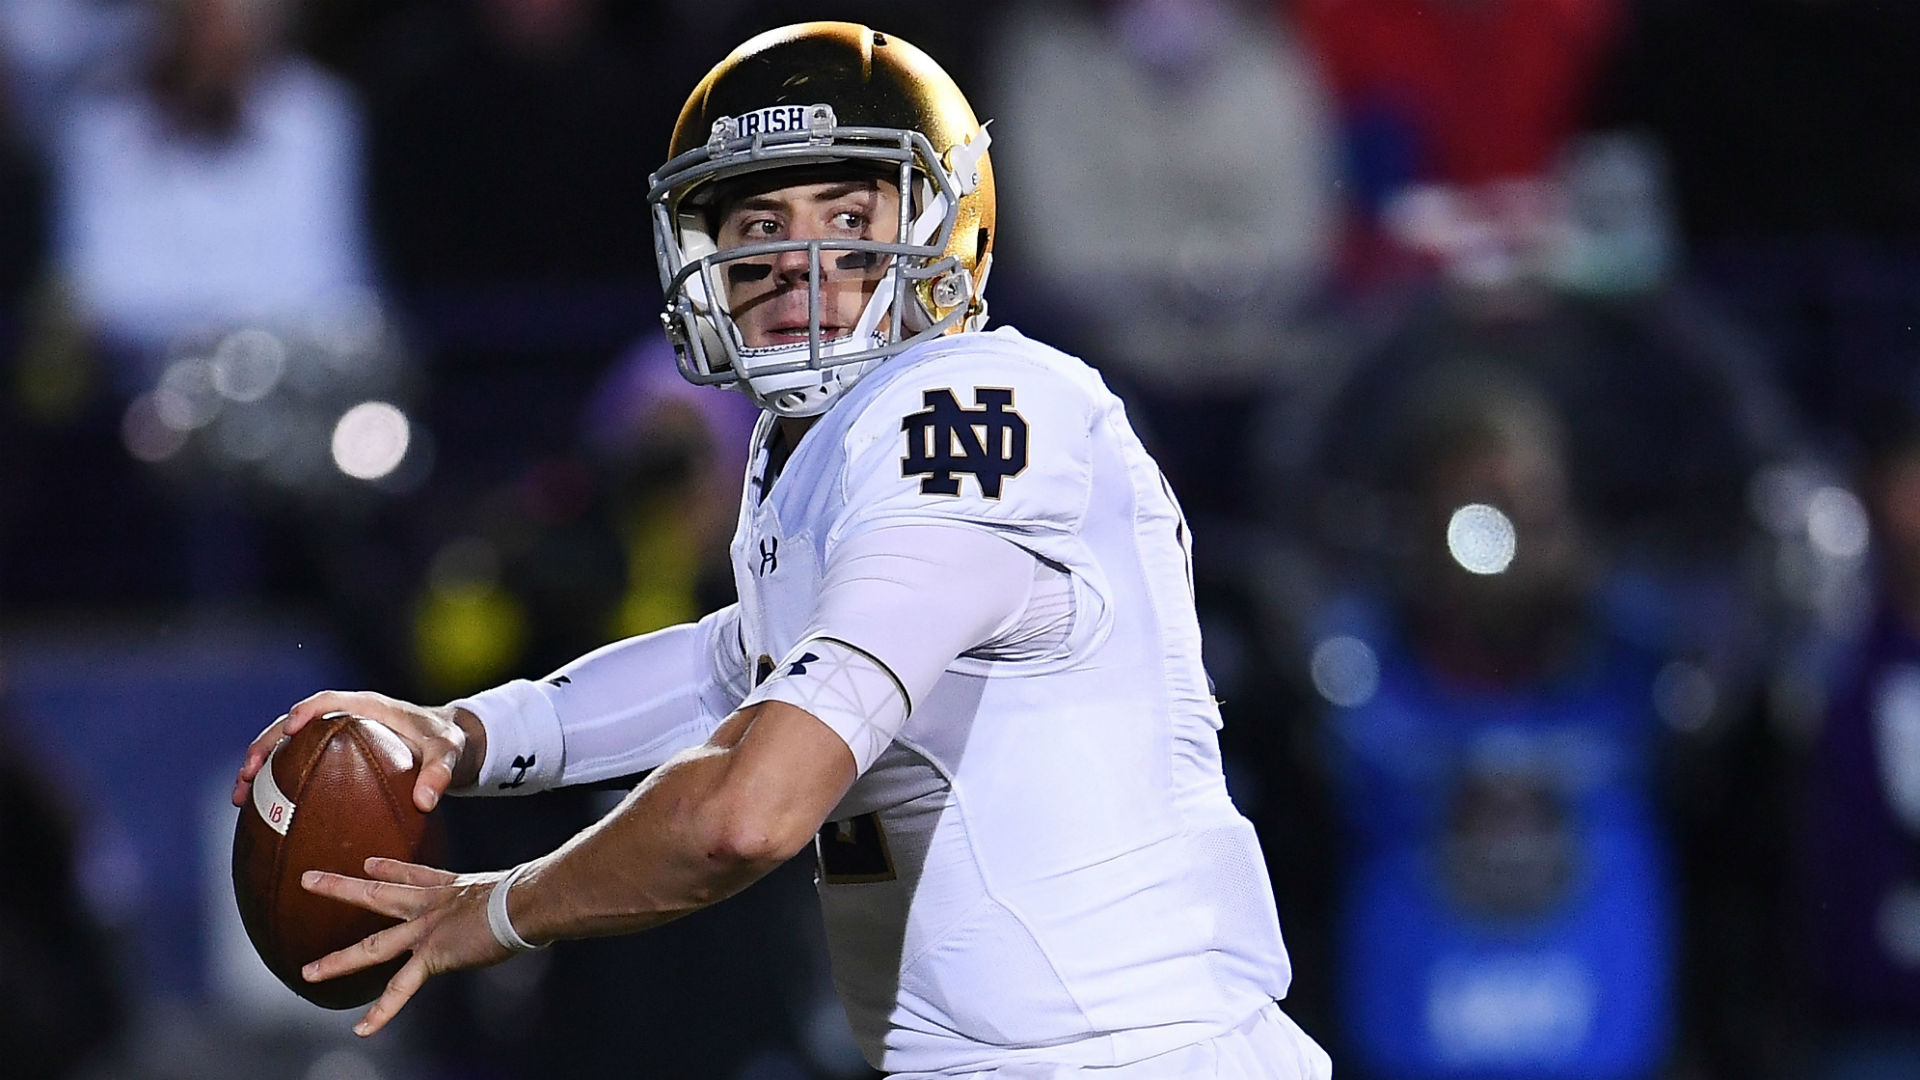 Notre Dame makes change at quarterback